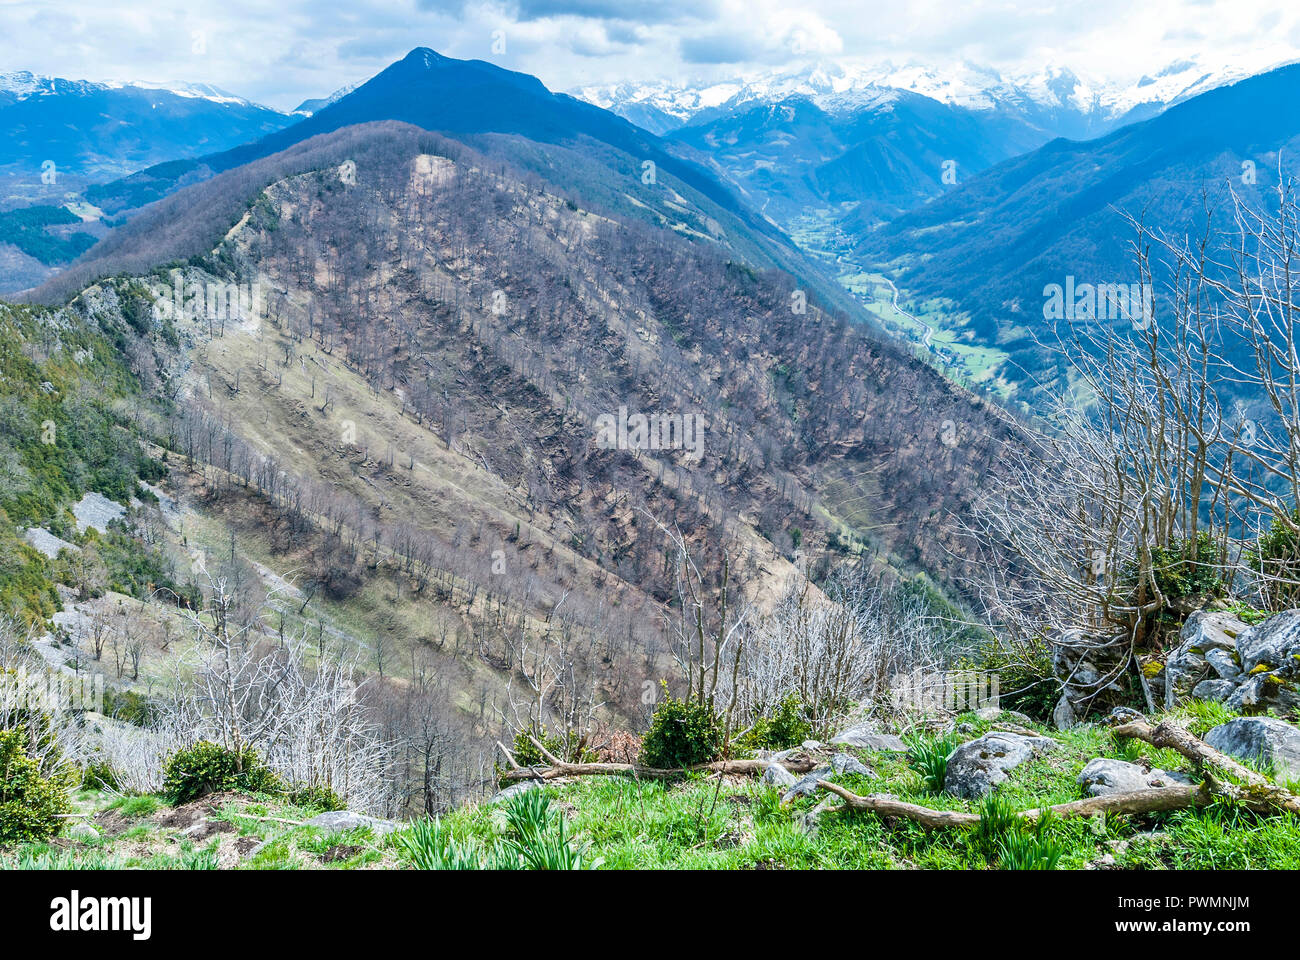 France, Pyrenees Ariegeoises Regional nature Park, Garbet Valley, trees decimated by a rocksilde - Stock Image